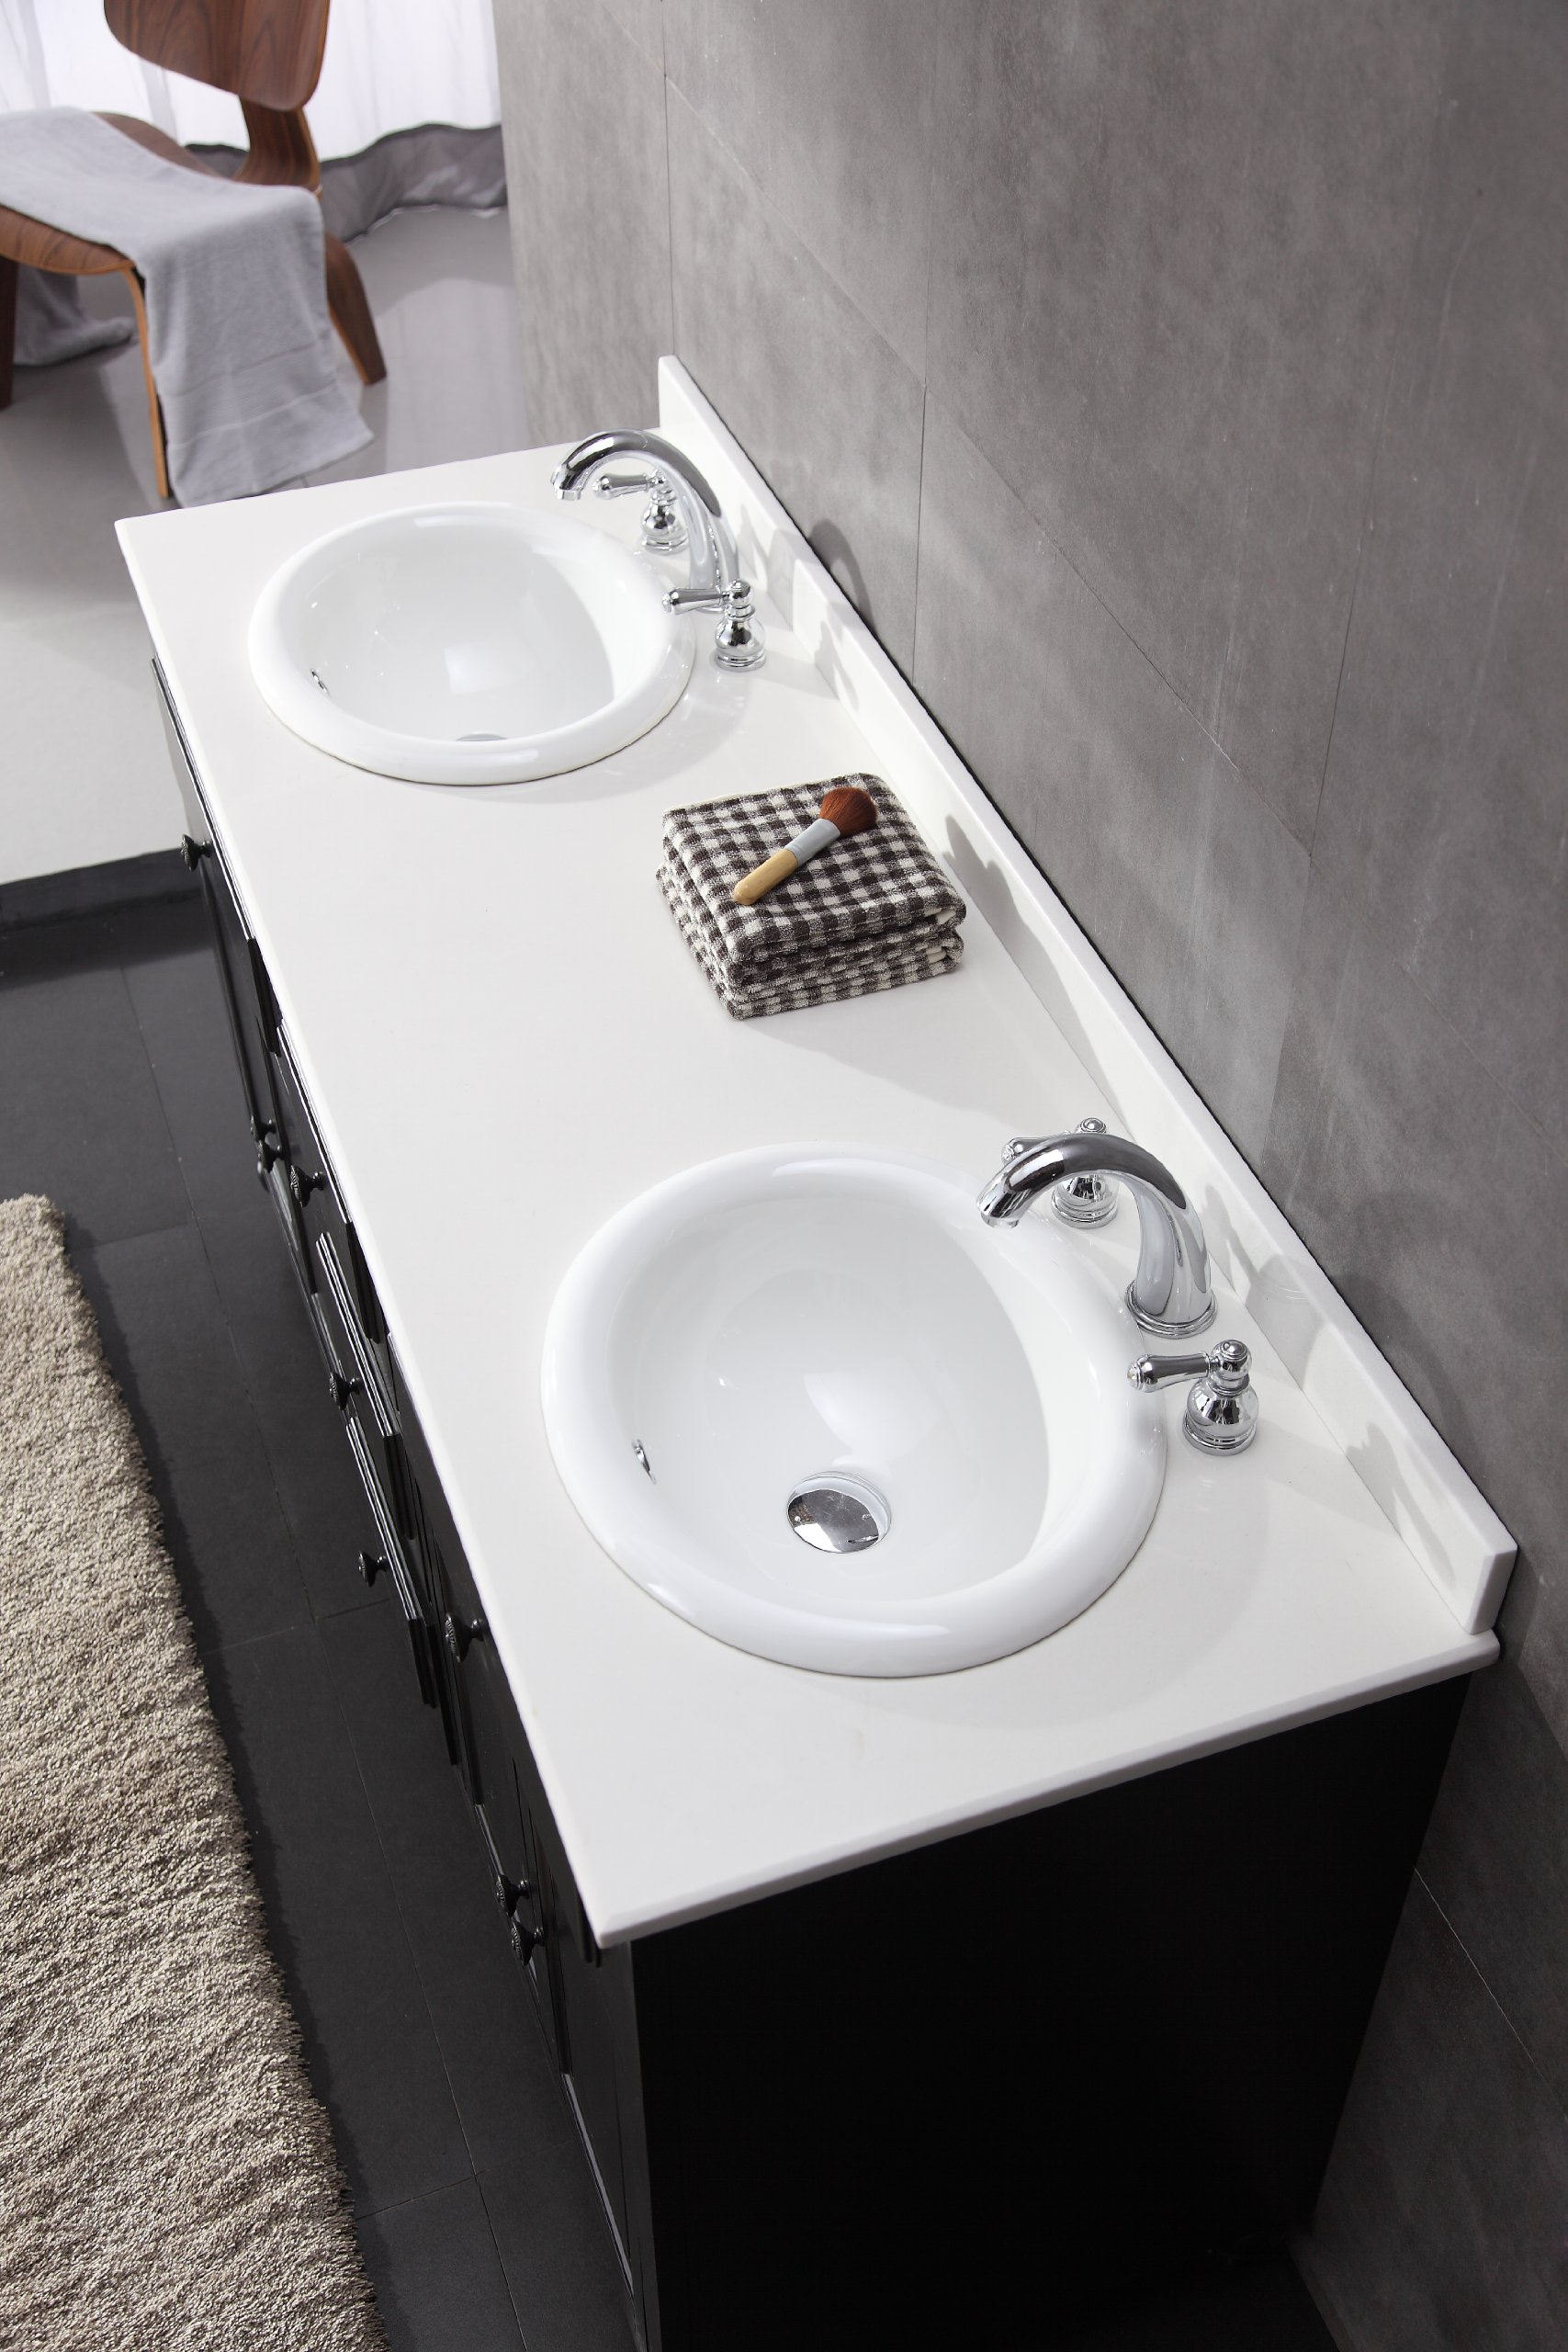 Ove Decors KensingtonDBL-VB Double Vanity with White Marble Countertop and Double Ceramic Basins, 60-Inch Wide, Dark Stain - Solid hardwood furniture Dark stain finish Sealed white man-made marble countertop and overmount ceramic basin - bathroom-vanities, bathroom-fixtures-hardware, bathroom - 912oCQti4nL -